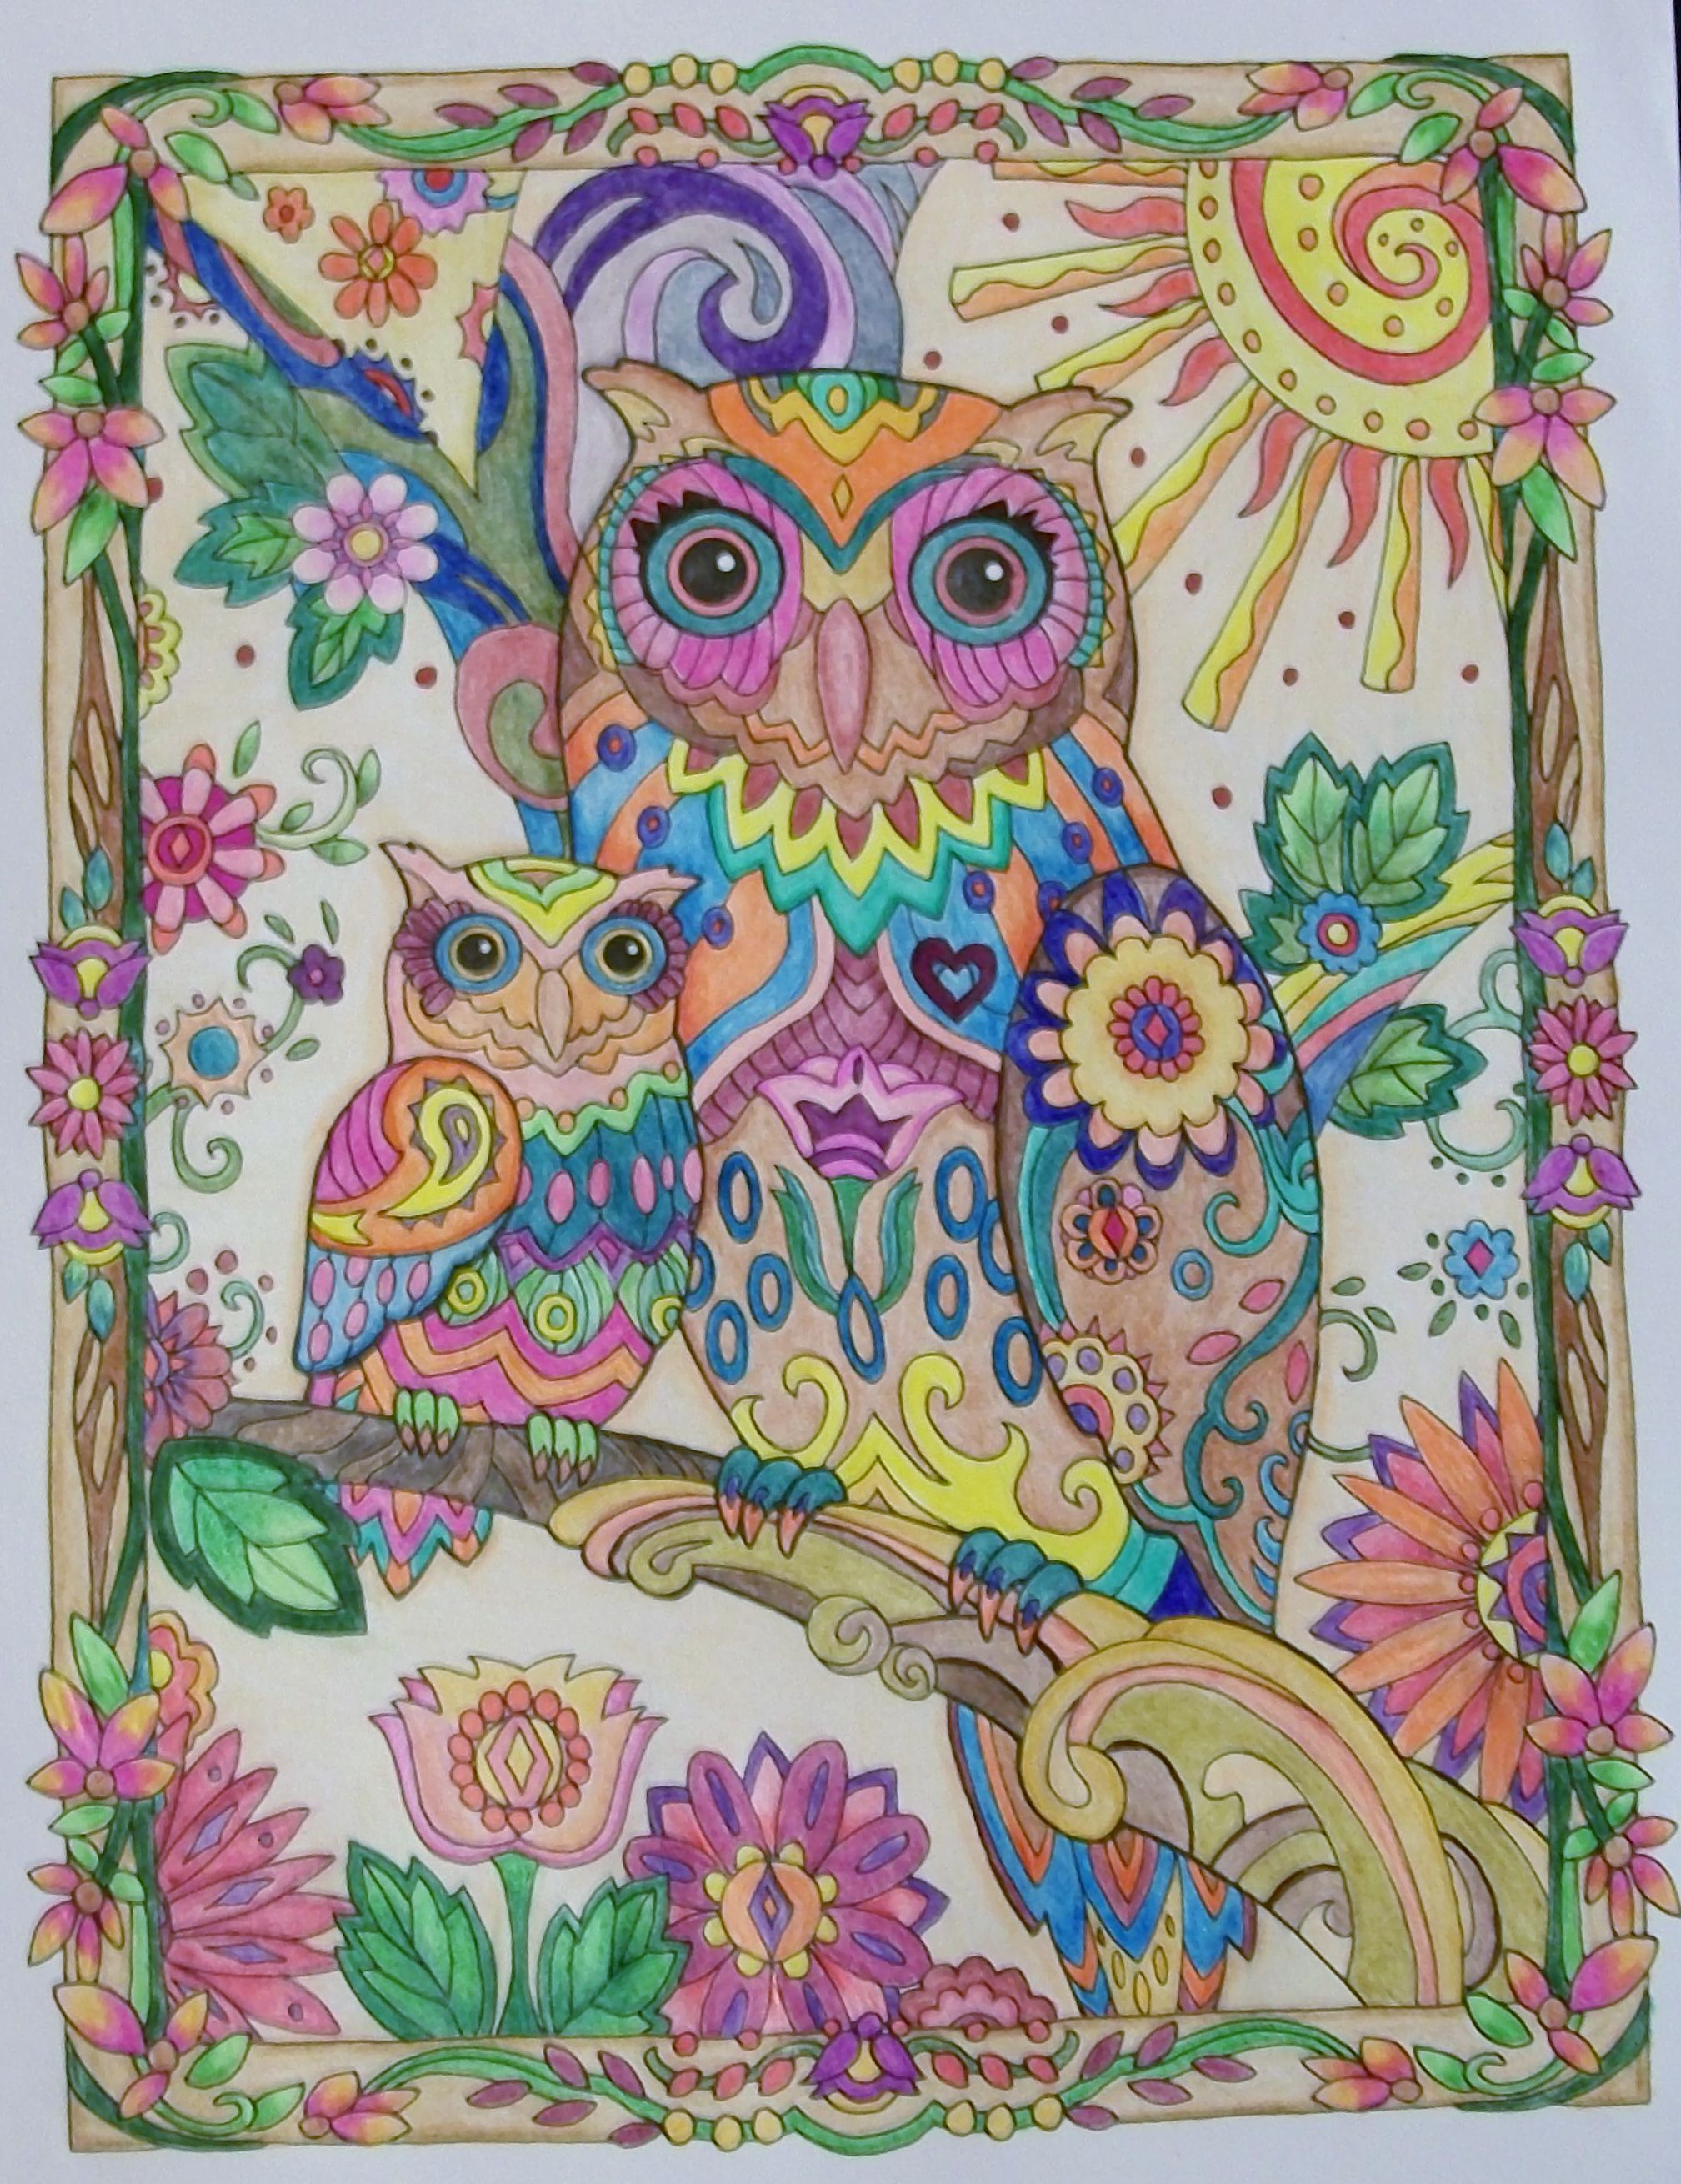 From Owls A Creative Haven Coloring Book Coloring Book Art Animal Coloring Pages Coloring Books